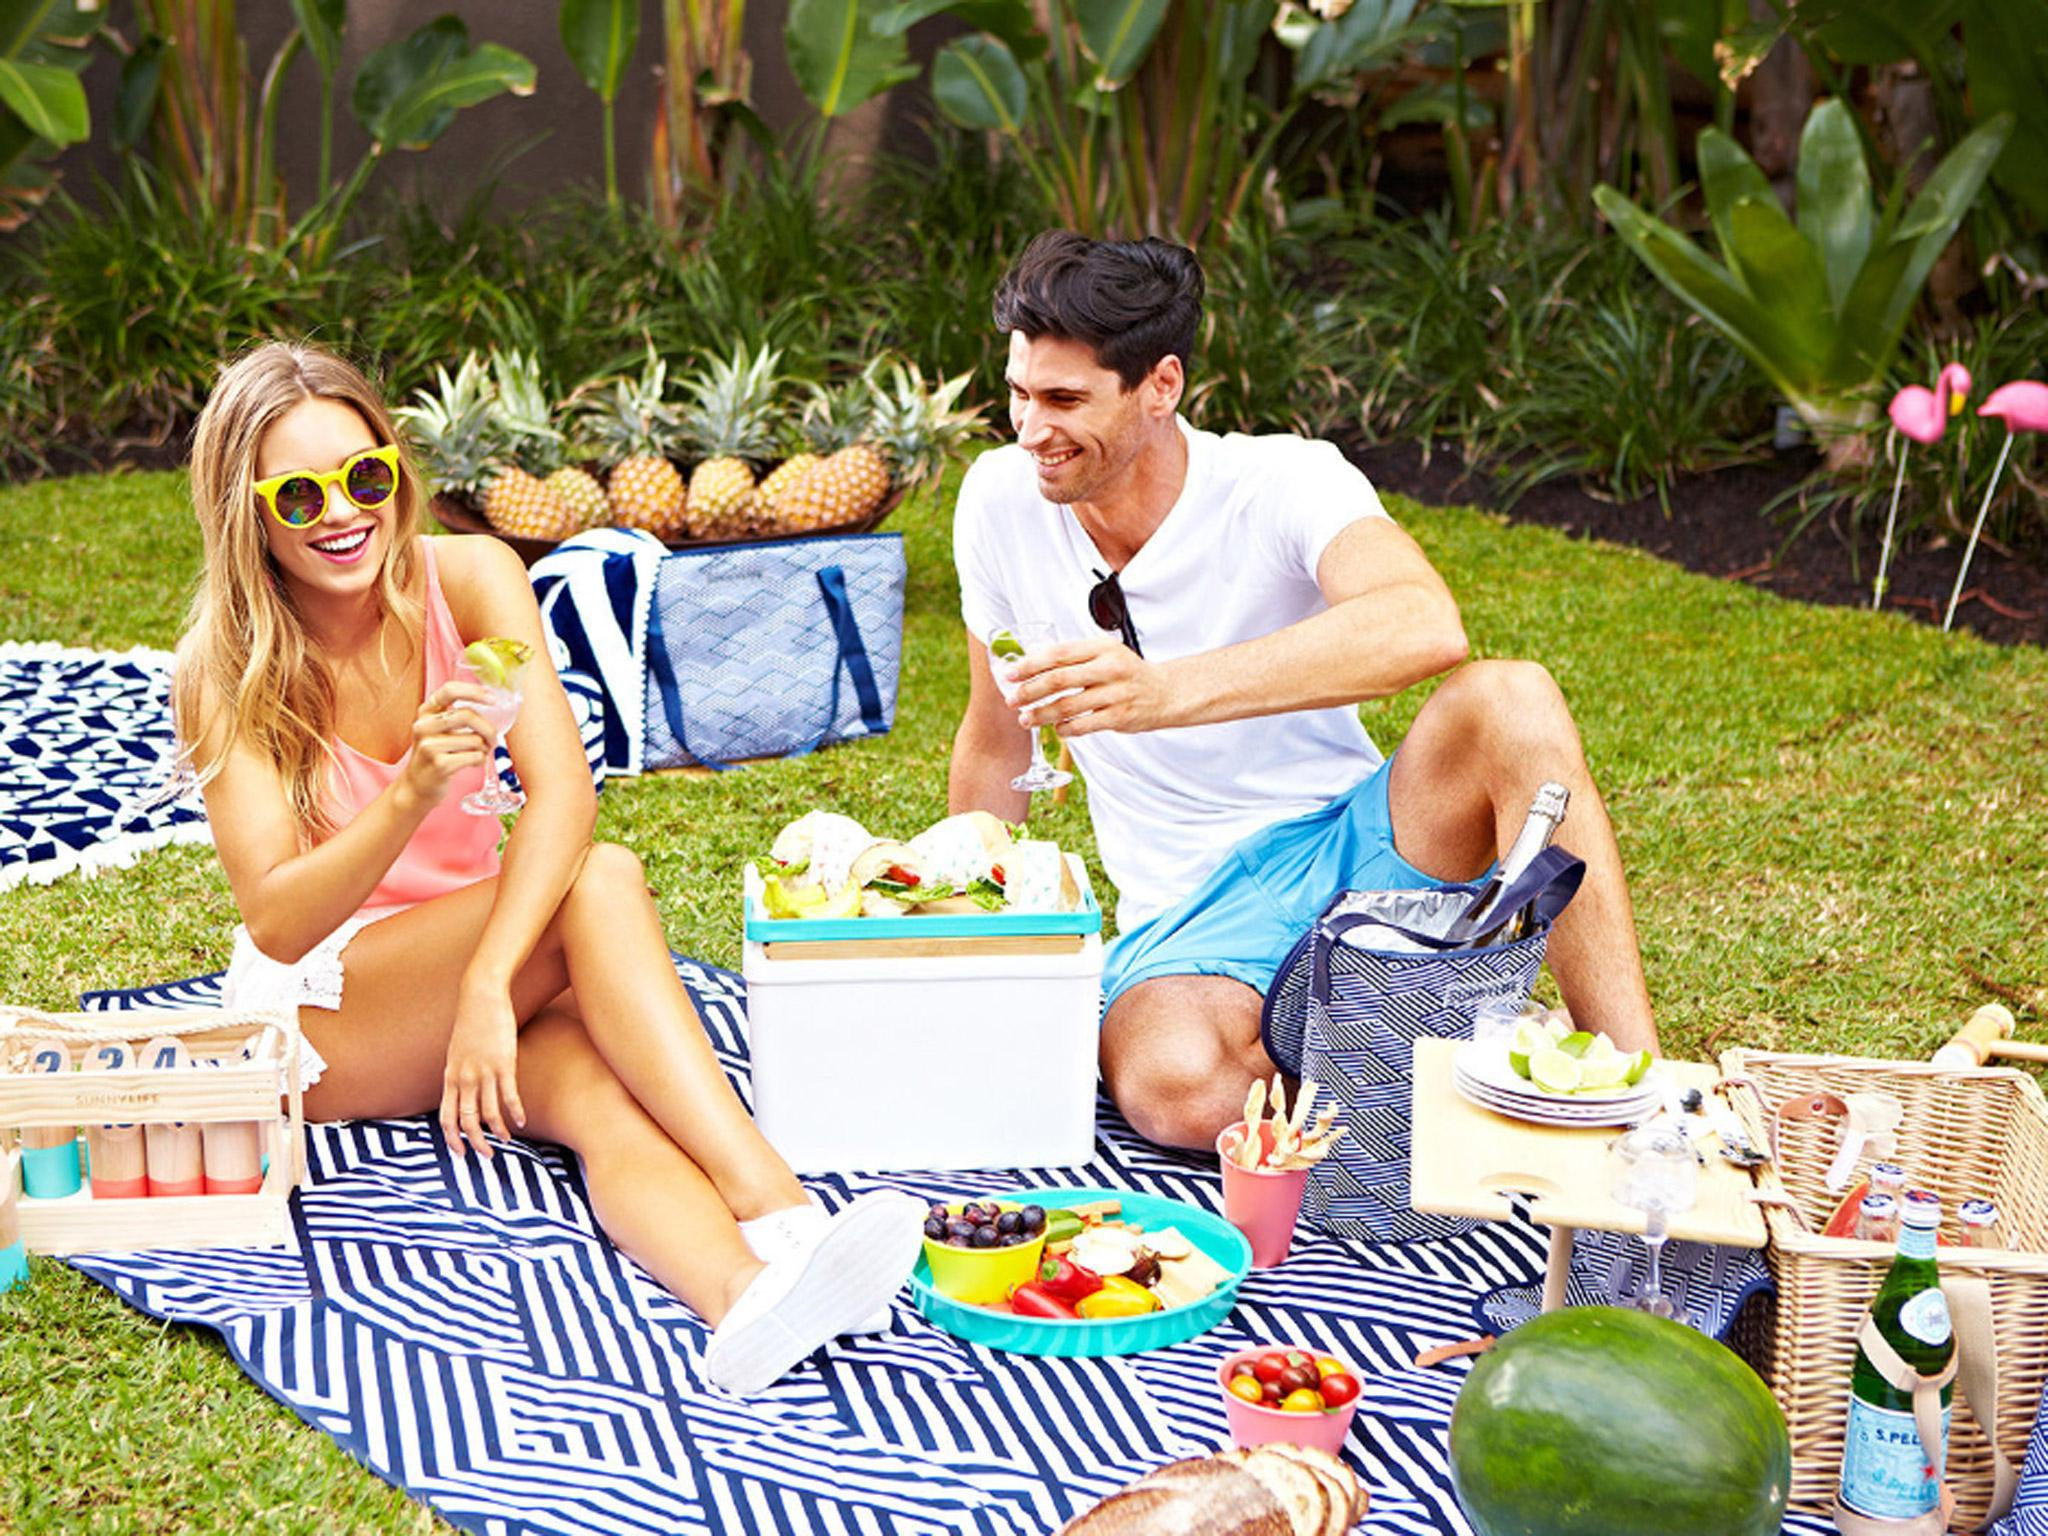 picnic-baskets-lifestyle-2-0.jpg